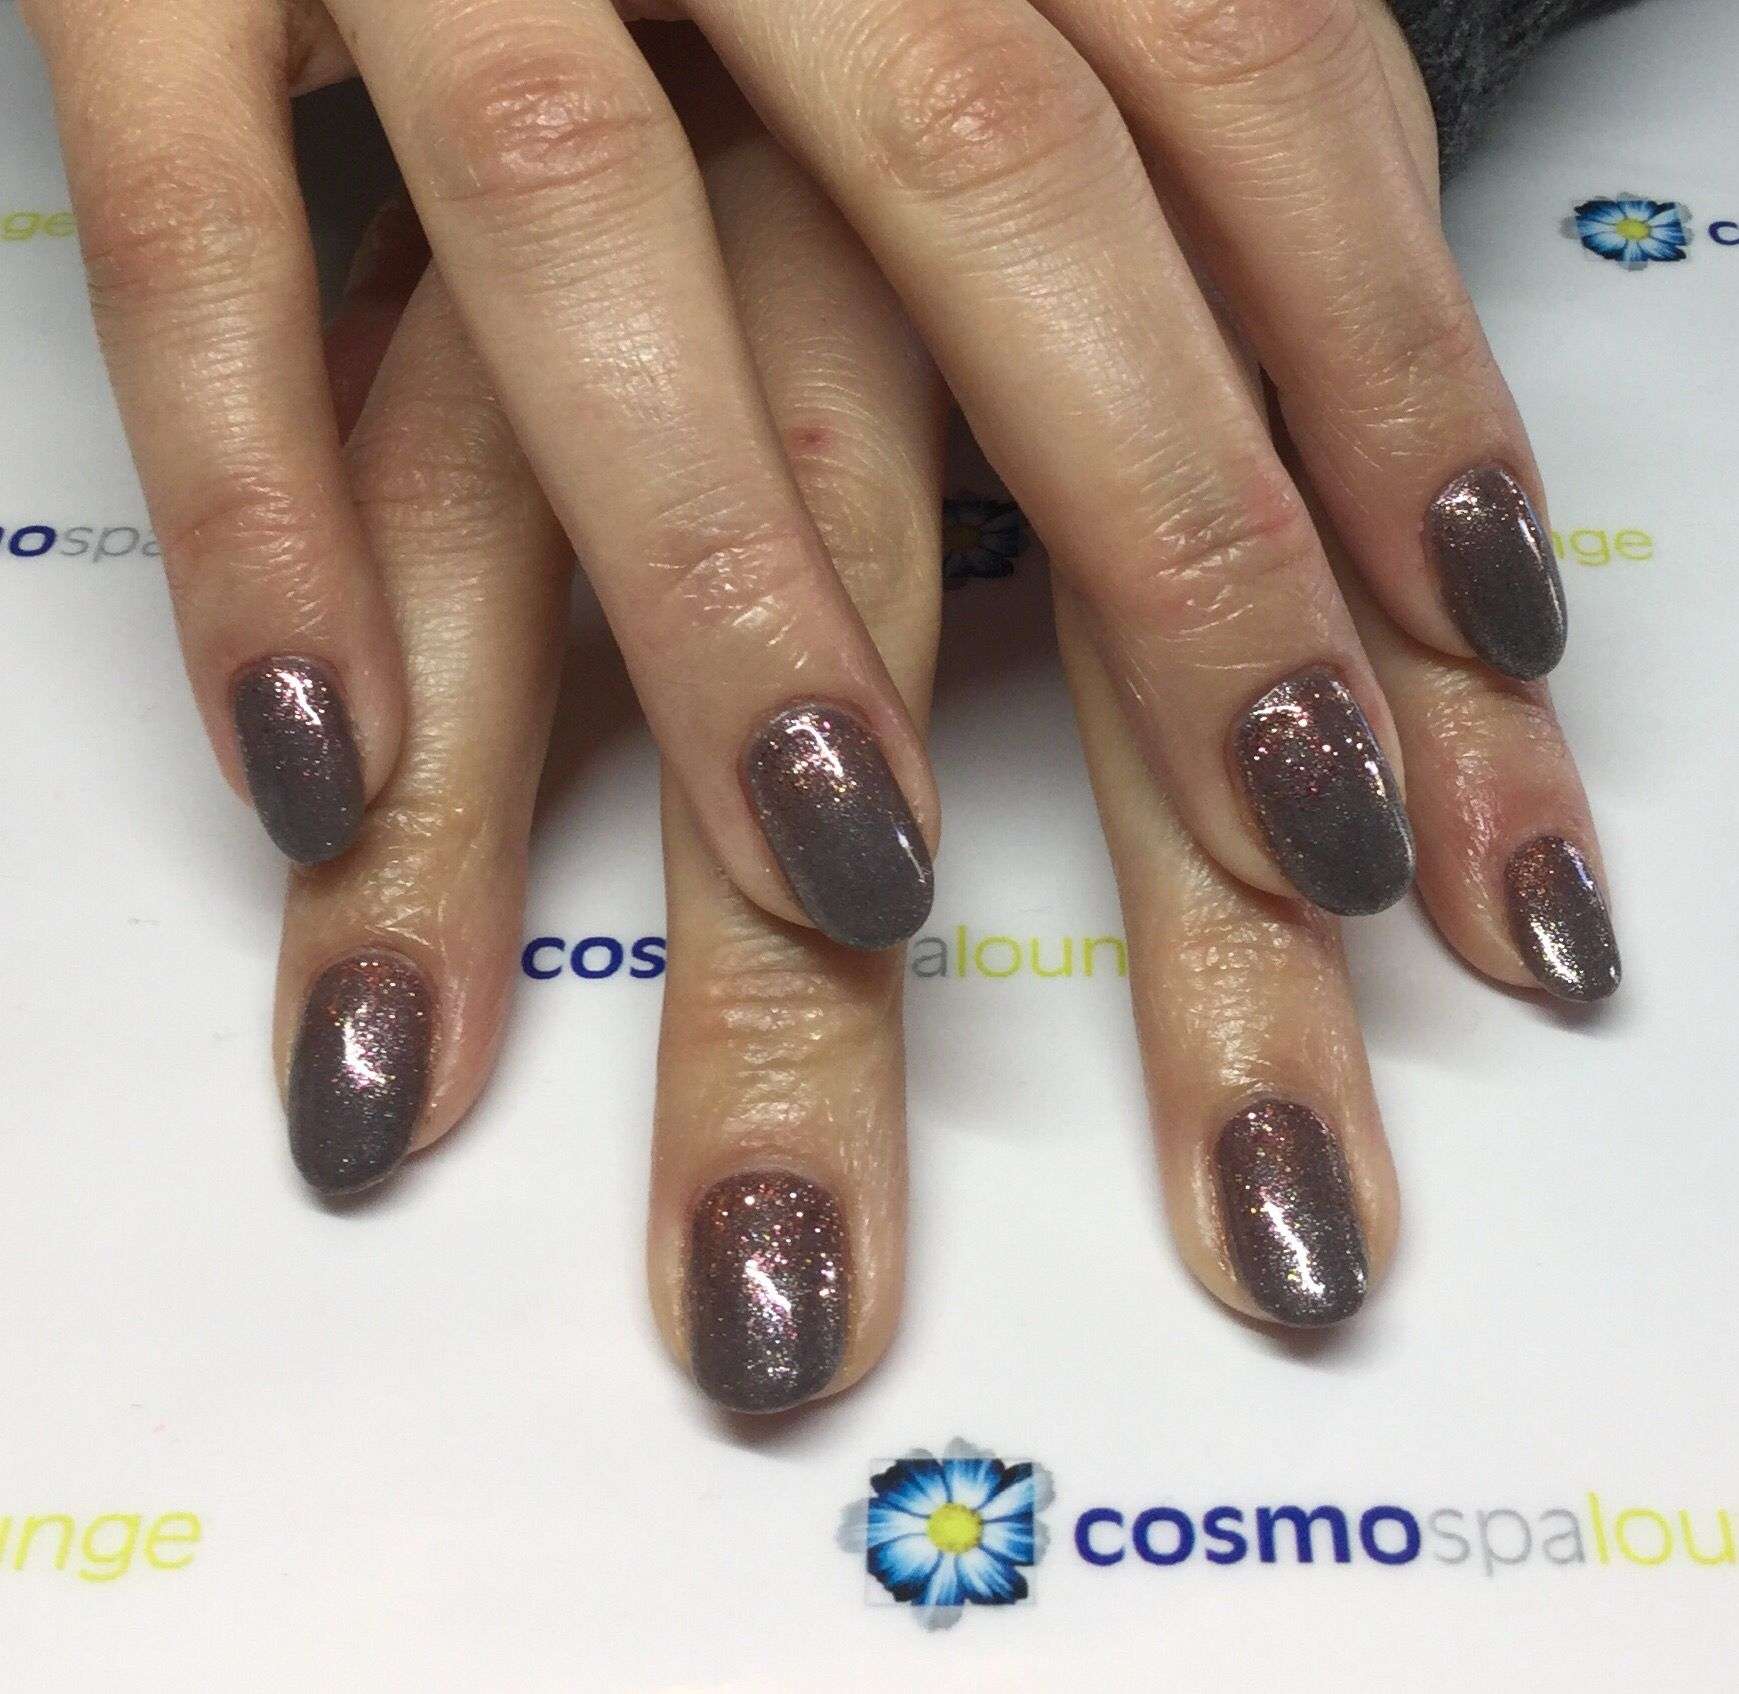 #gelish #nailart #winter #cosmospalounge #gradient